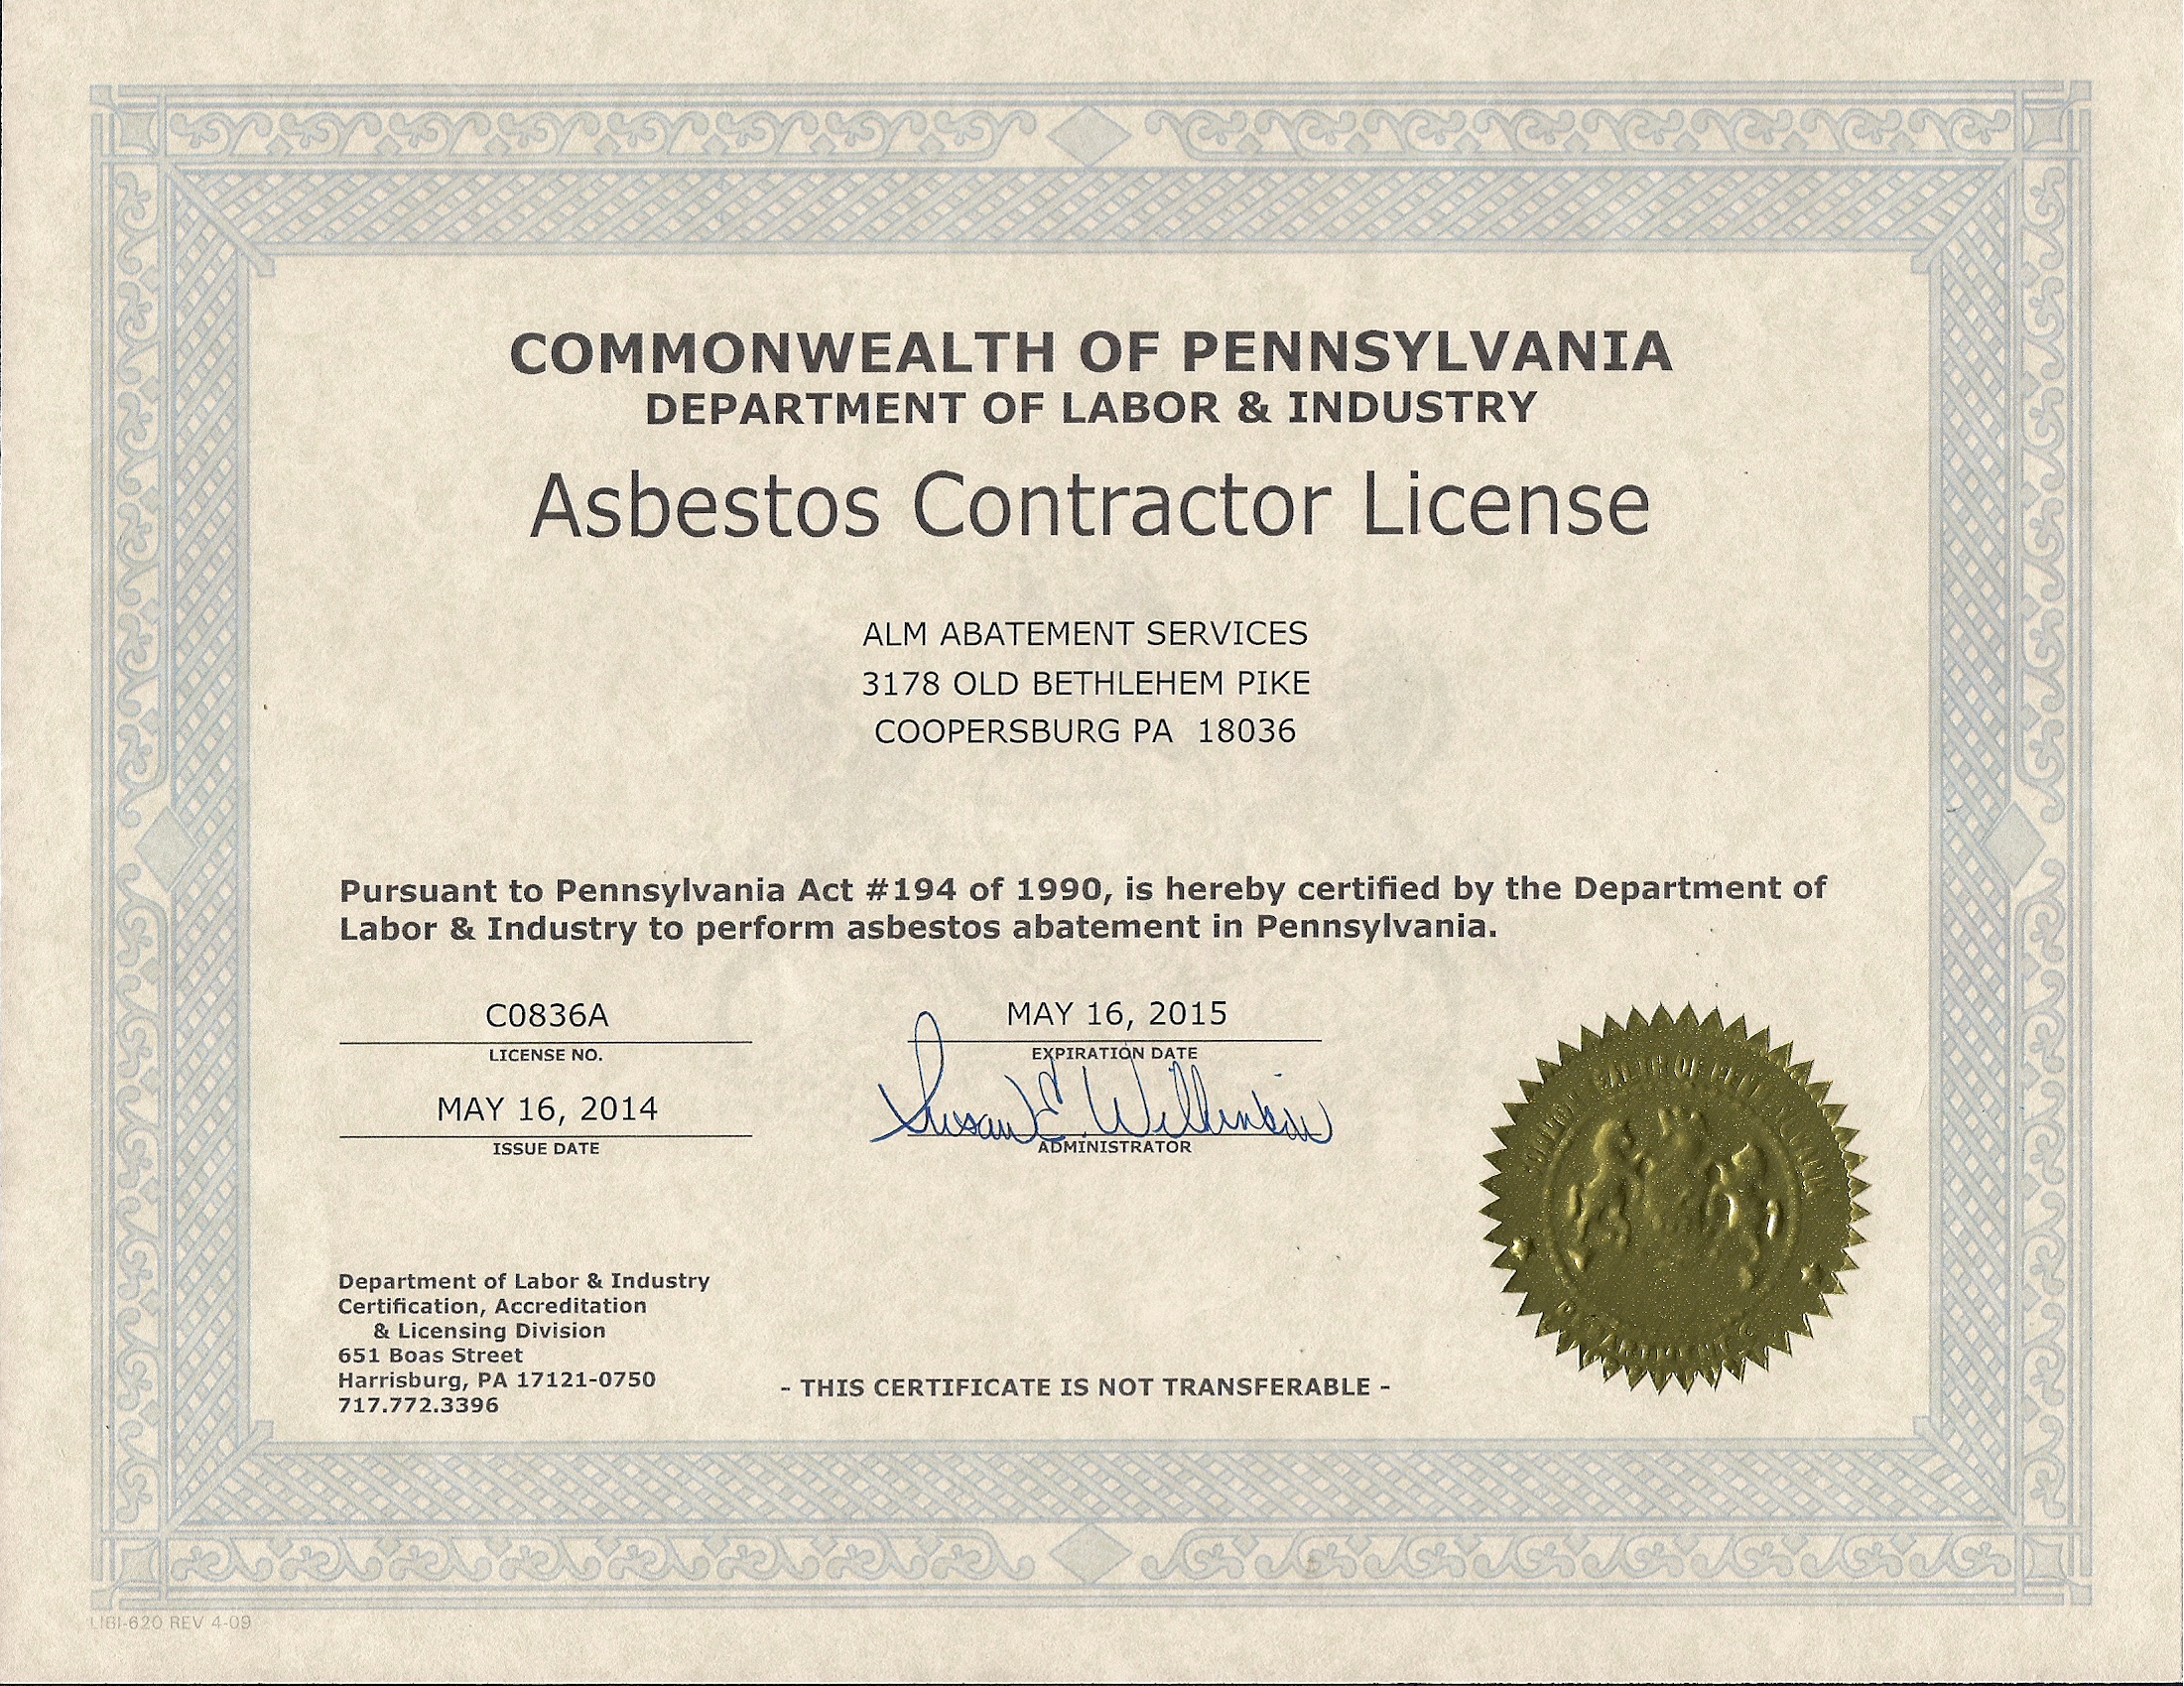 About alm abatement services llc view our asbestos contractors license 1betcityfo Gallery